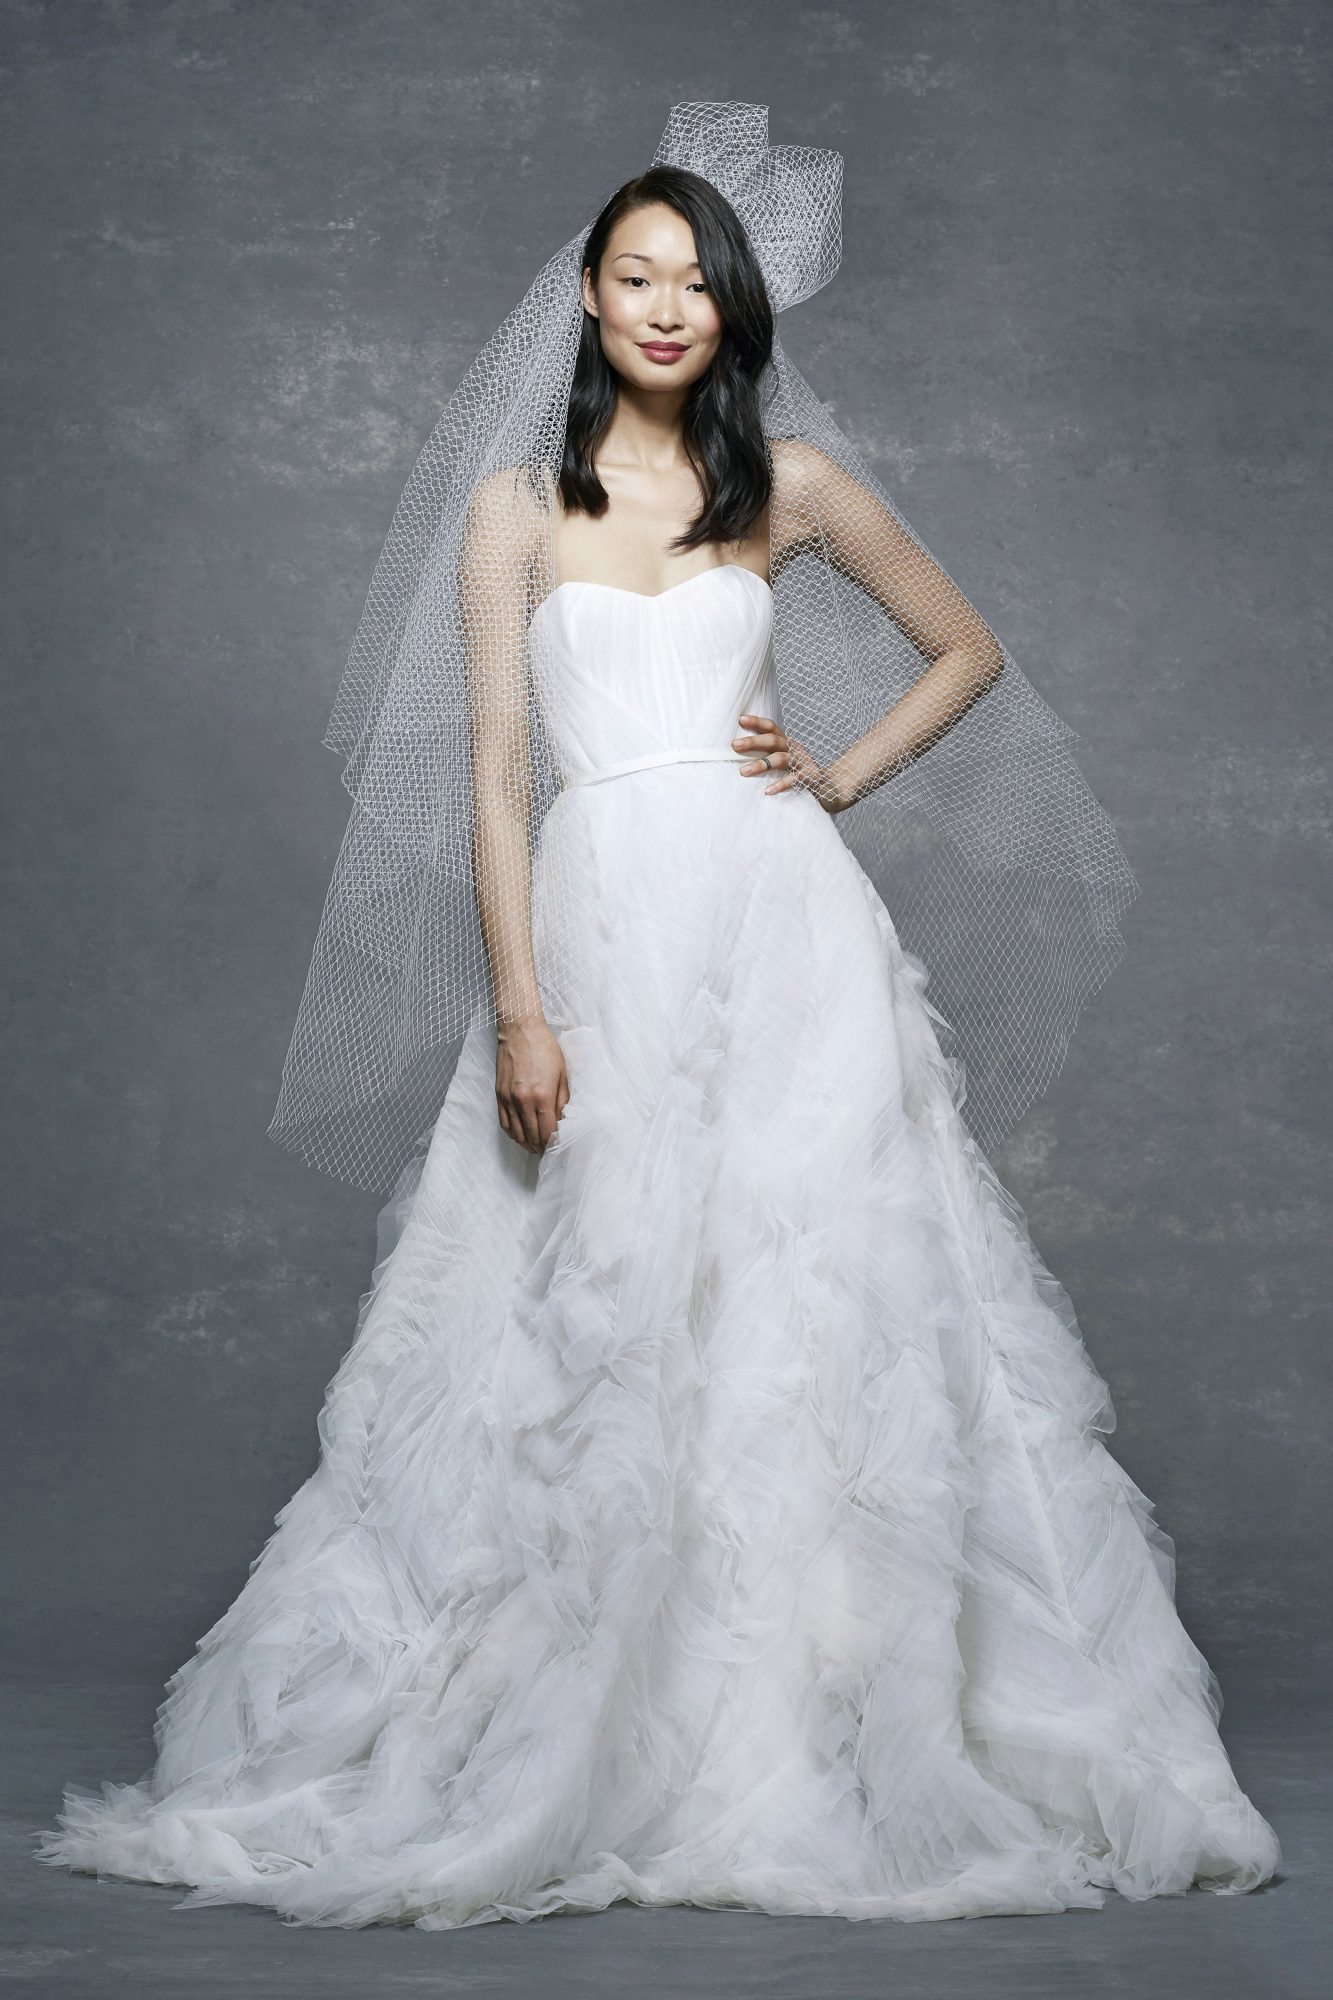 marchesa notte bridal wedding dress off-the-shoulder sweetheart with veil